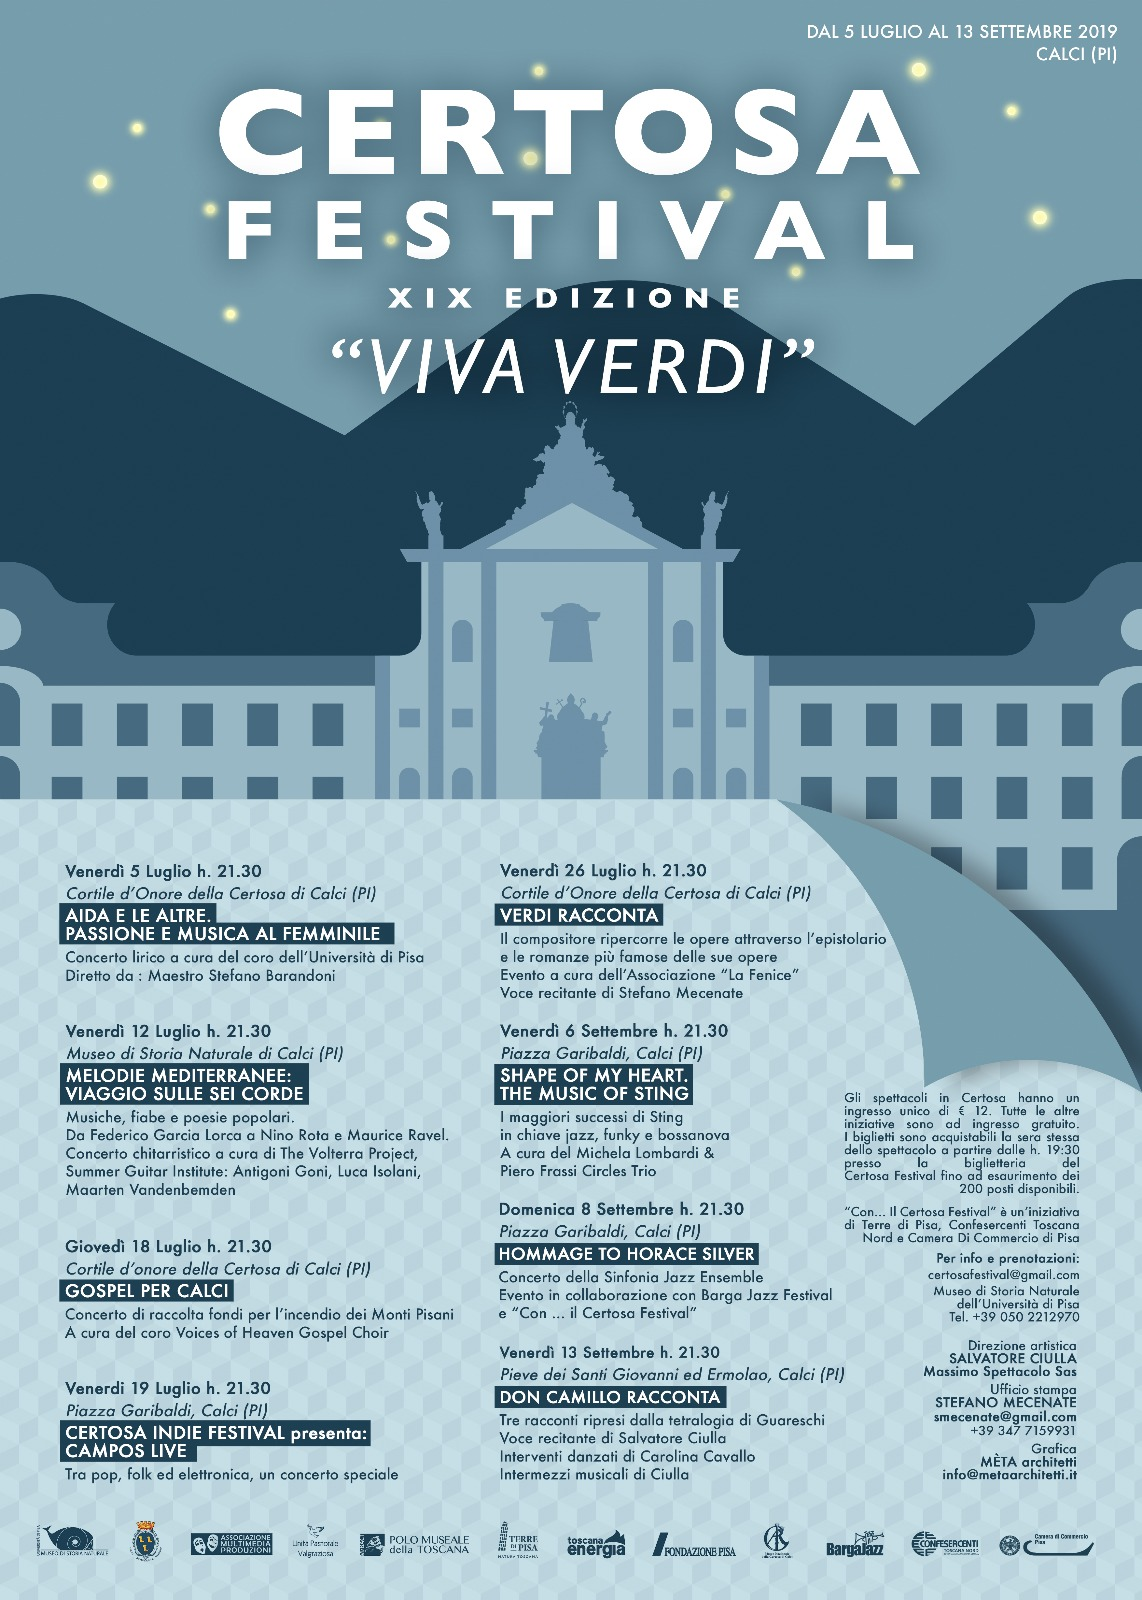 Certosa Festival, 19th edition | Calci